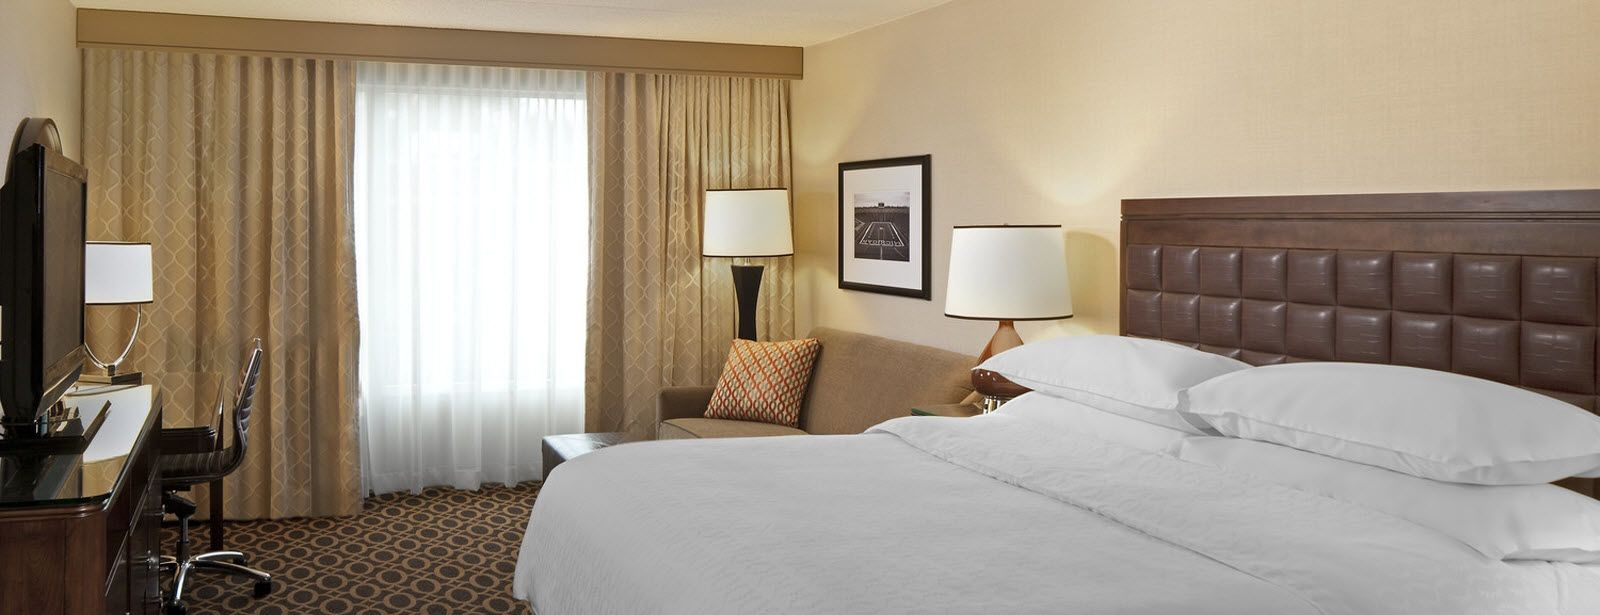 Deluxe King Guest Room | Sheraton Ann Arbor Hotel